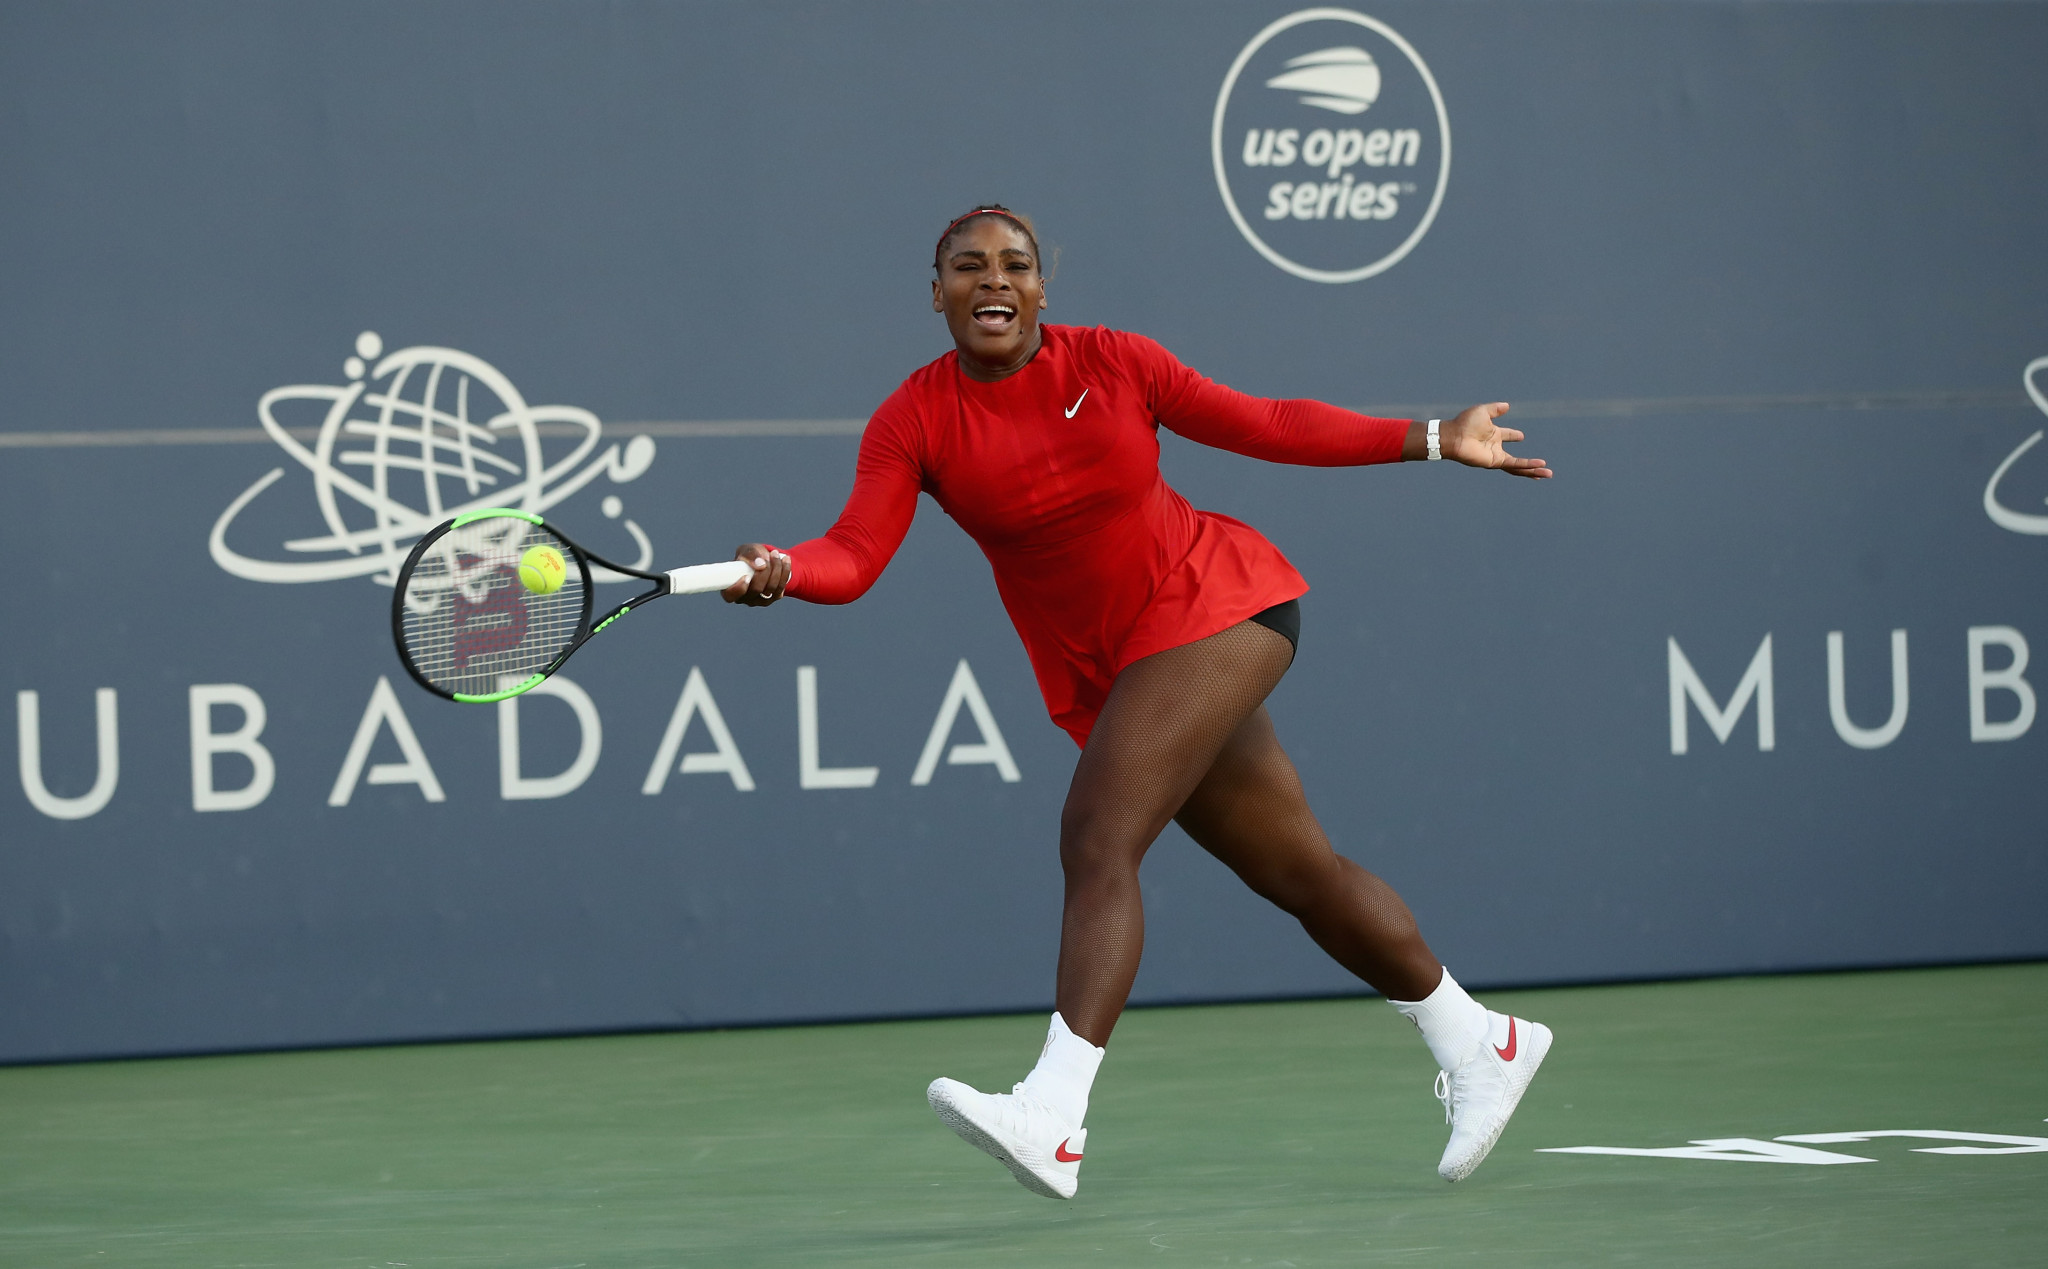 Serena Williams is targeting a seventh US Open title at Flushing Meadows ©Getty Images